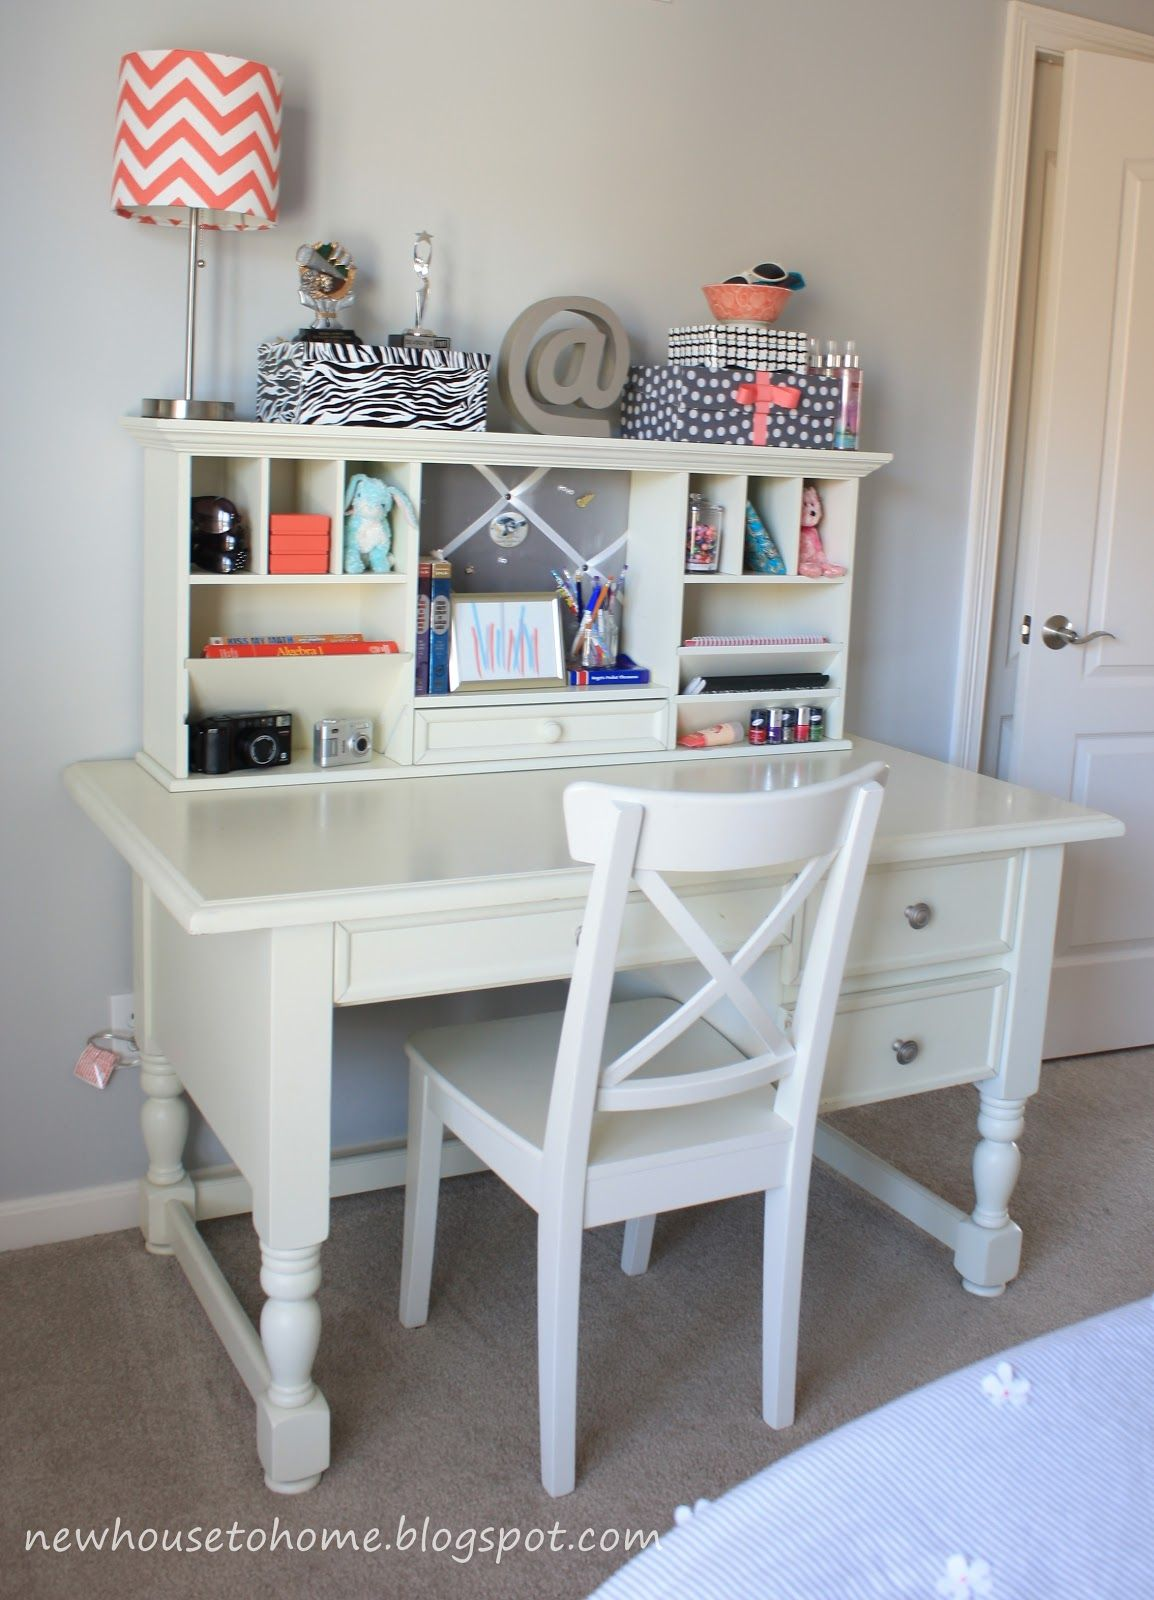 White Desk For Girls Room Cool Desk For Girls Room  Every Teenage Girl Needs A Place To Be Inspiration